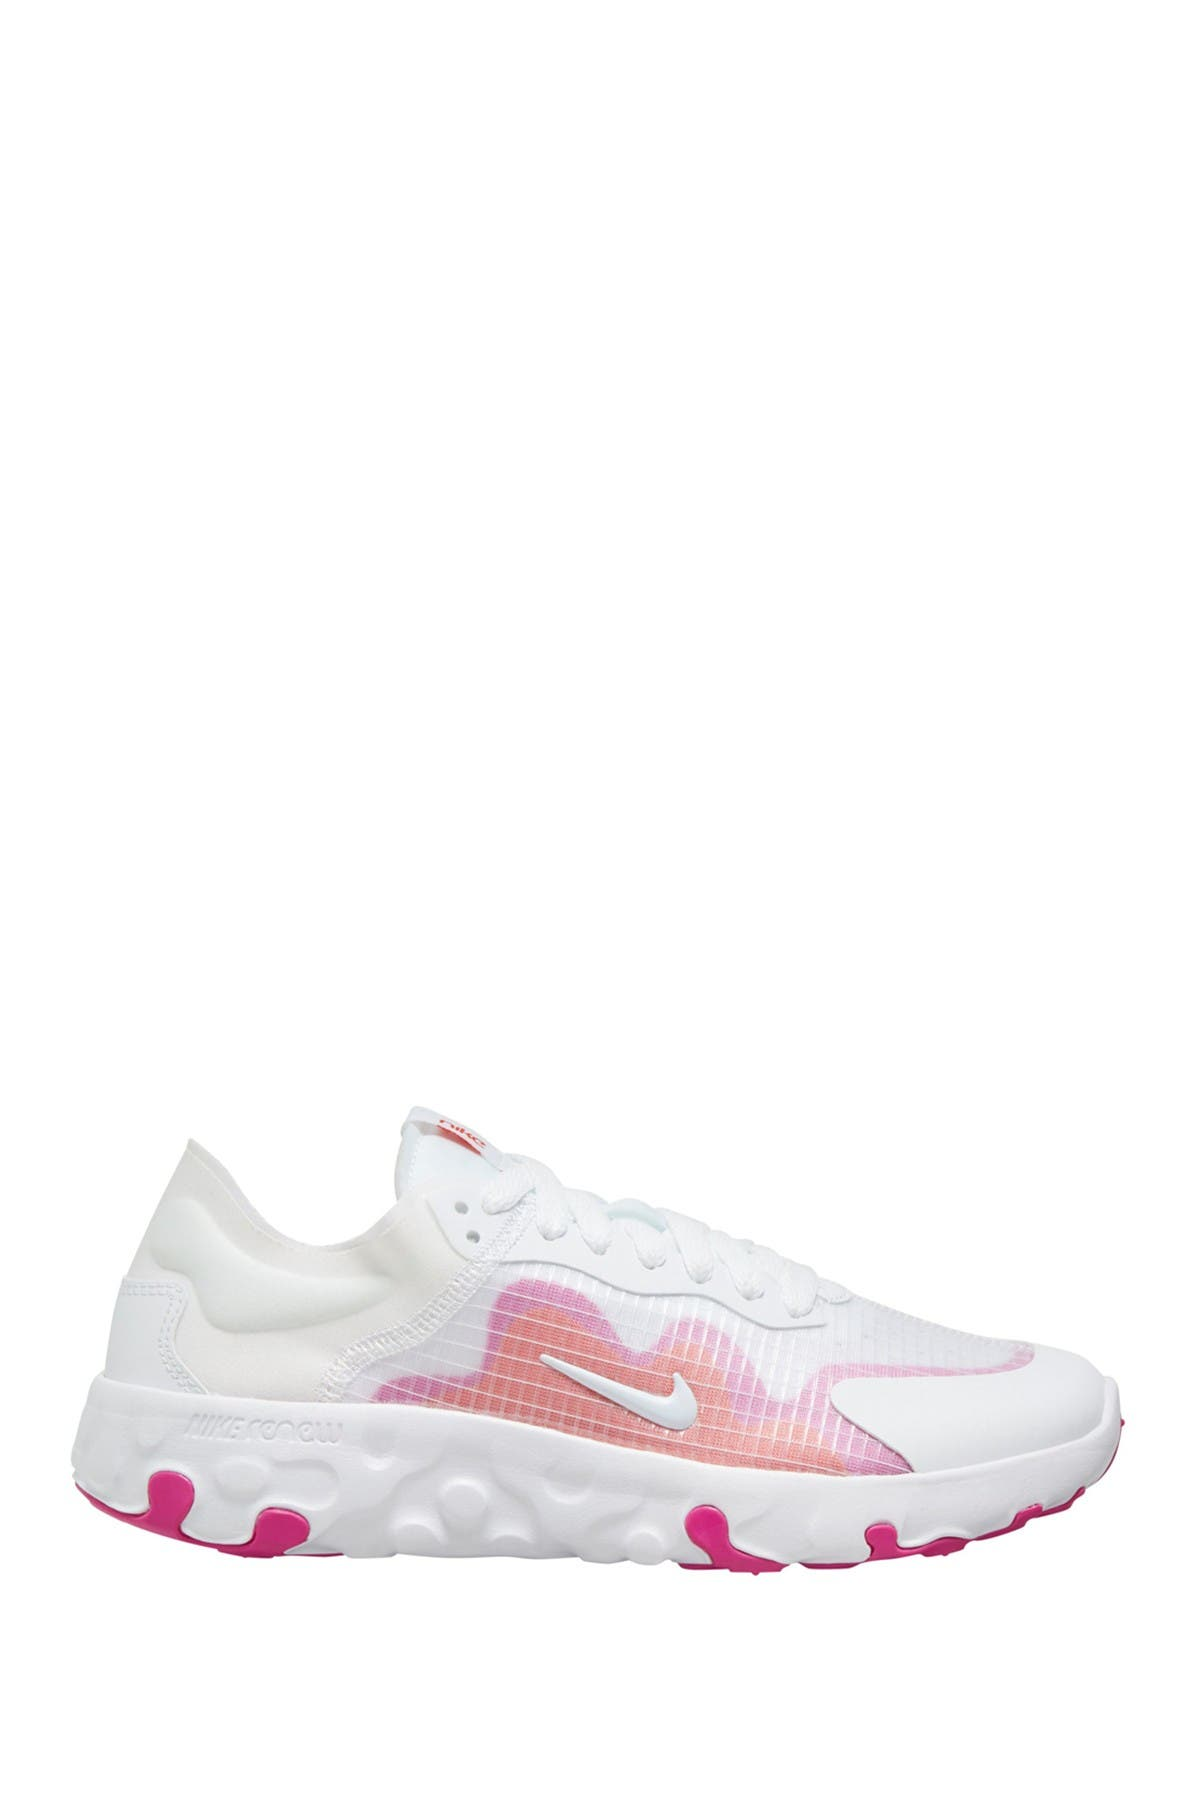 Image of Nike Renew Lucent Sneaker